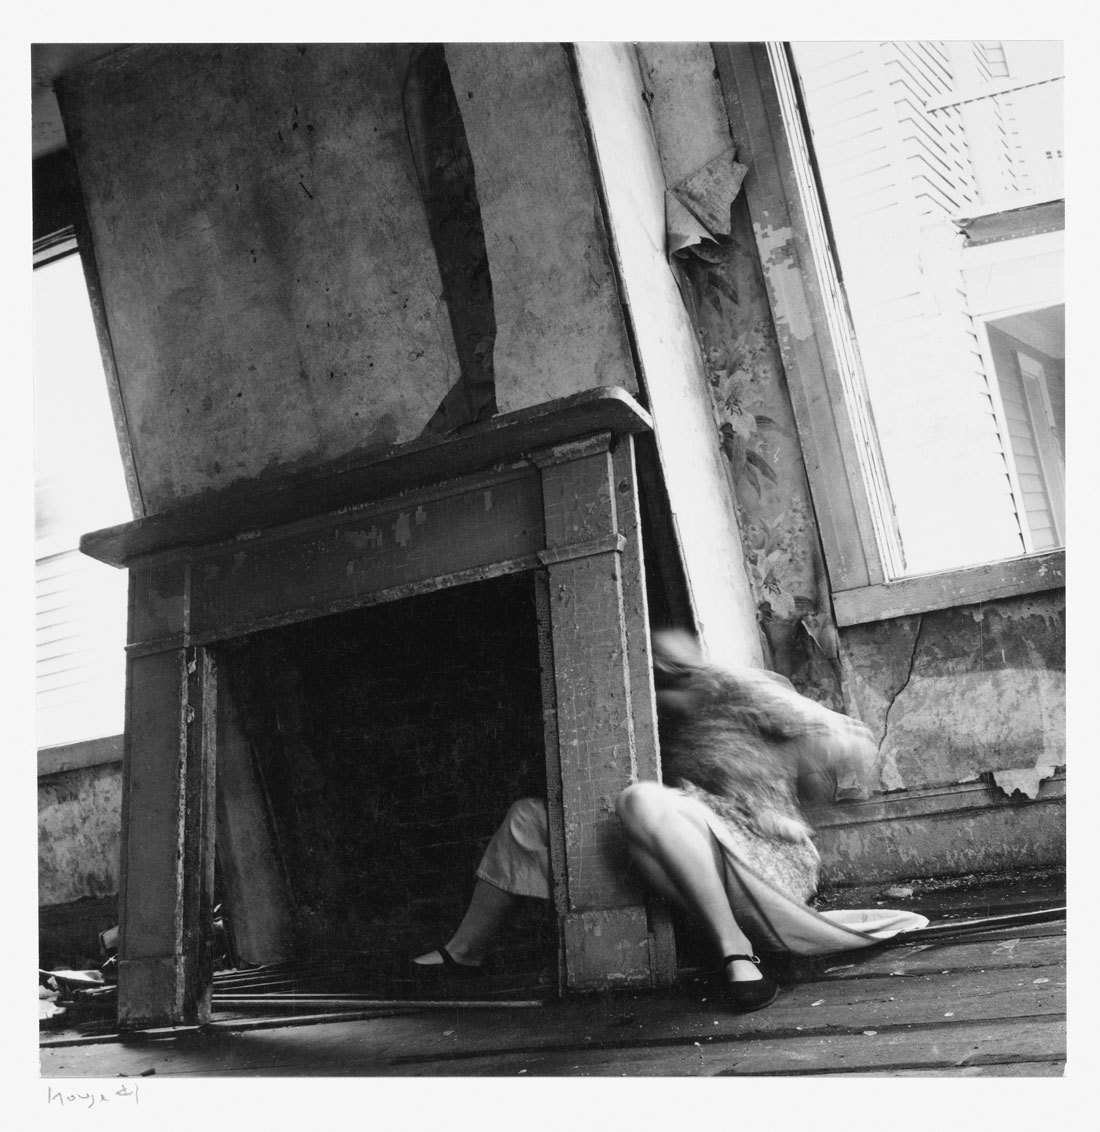 mirrormaskcamera:  (via Art Blart - 'francesca woodman' at the guggenheim museum, new york)  Francesca Woodman, House #4 1976 Providence, Rhode Island